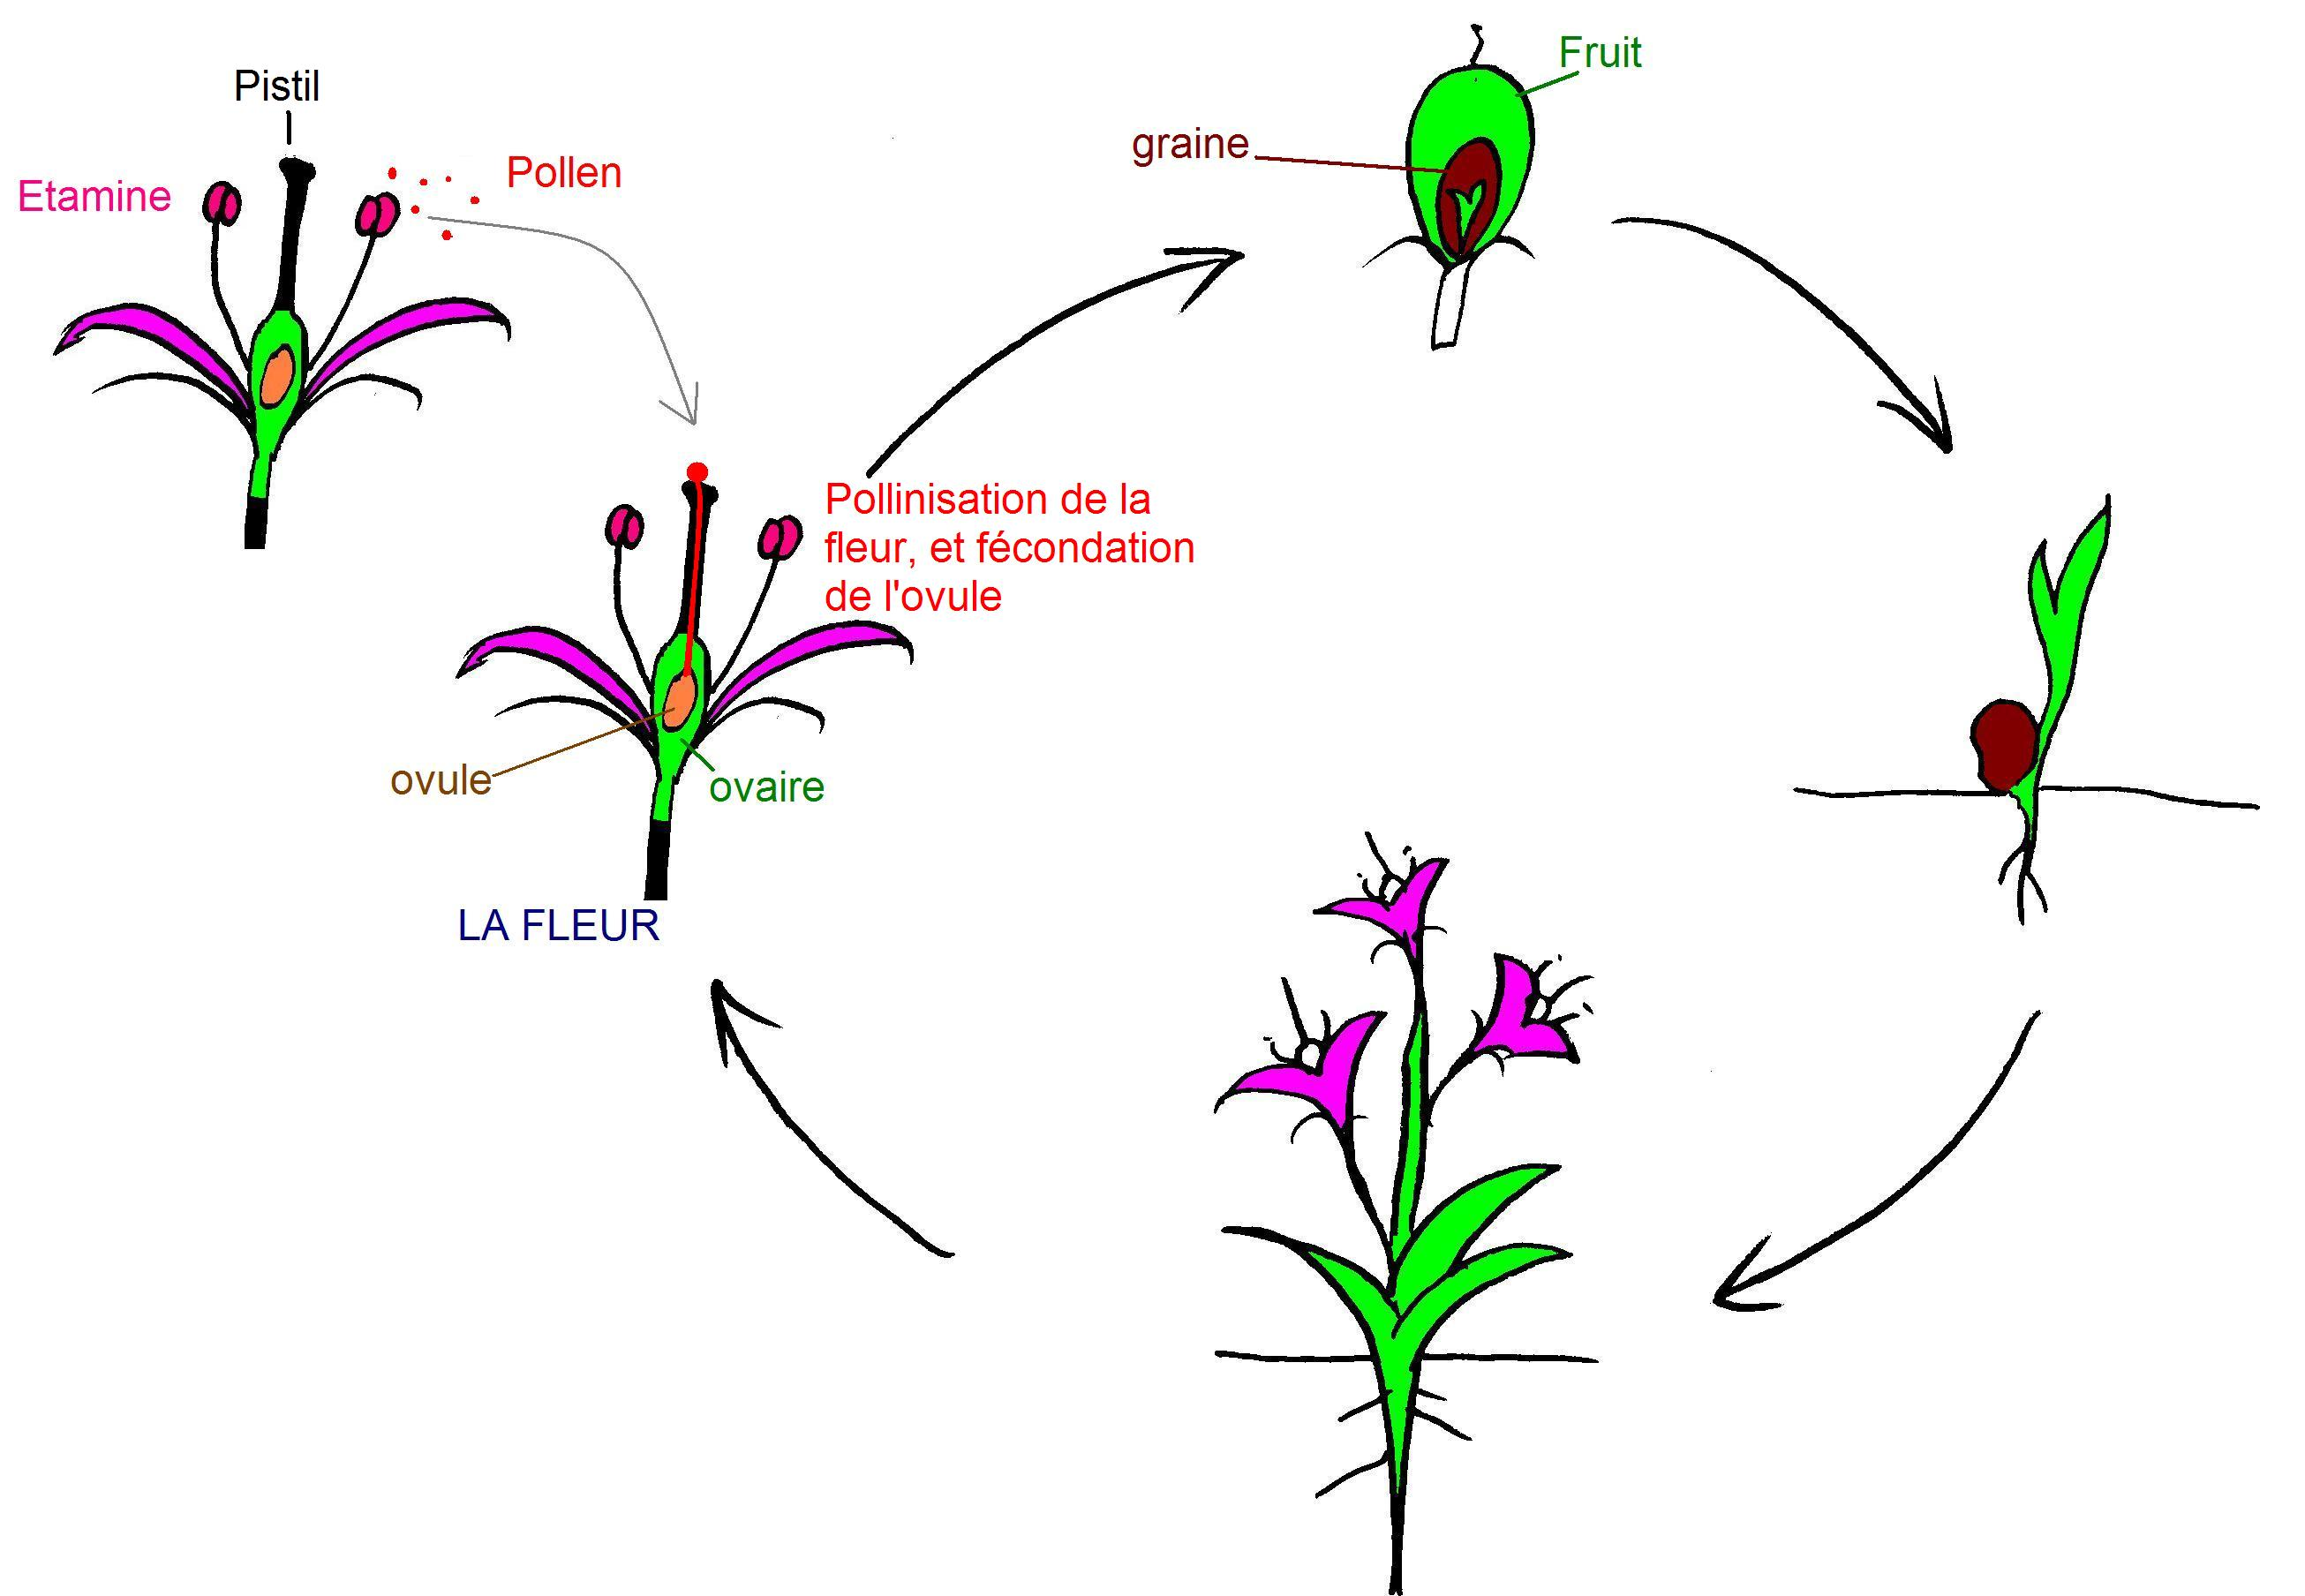 http://upload.wikimedia.org/wikipedia/commons/6/68/Schema_cycle_angiosperme.JPG